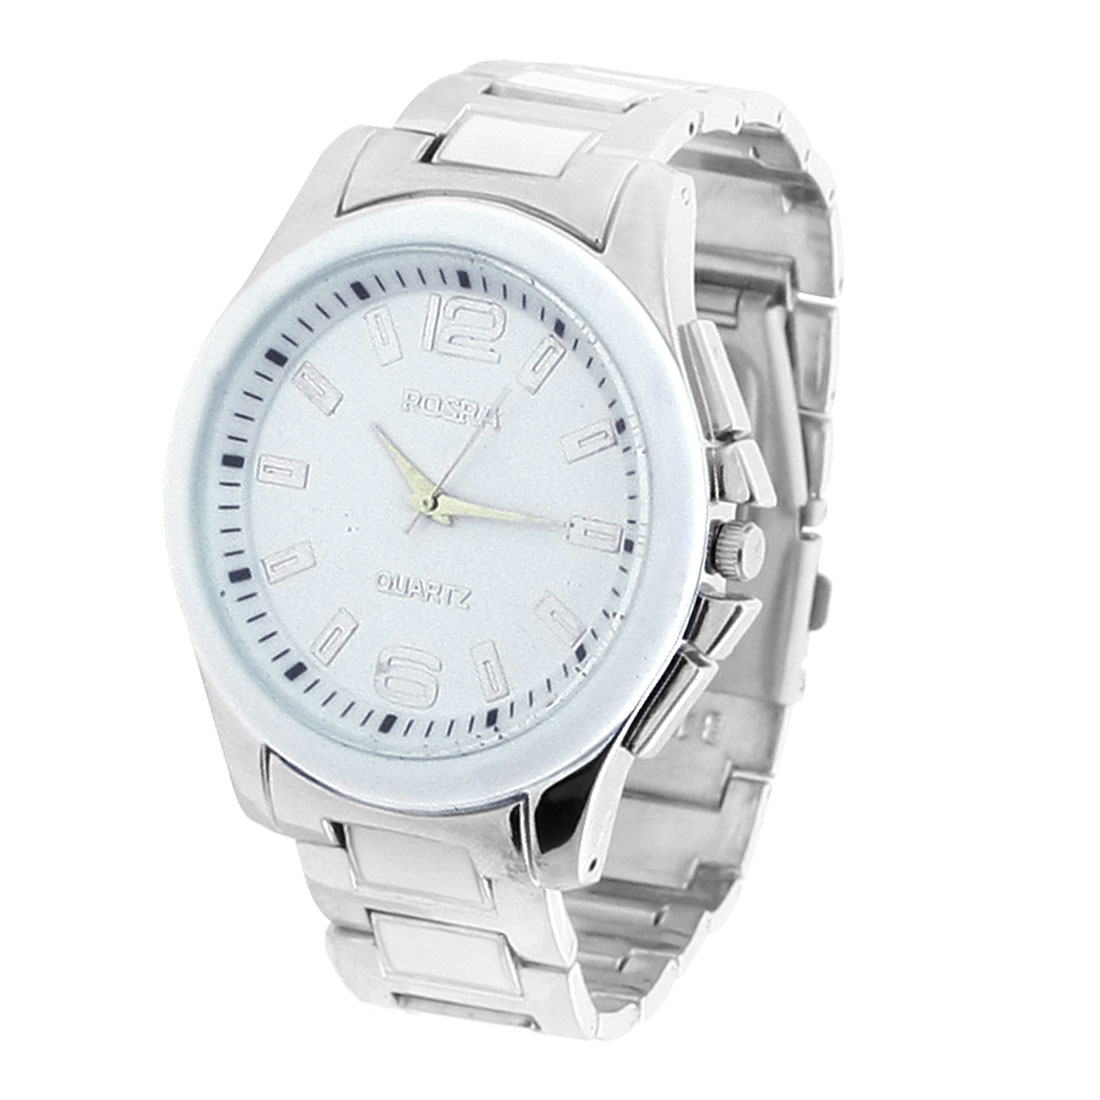 Man Dial Number Display Watchband Wrist Watch White Silver Tone